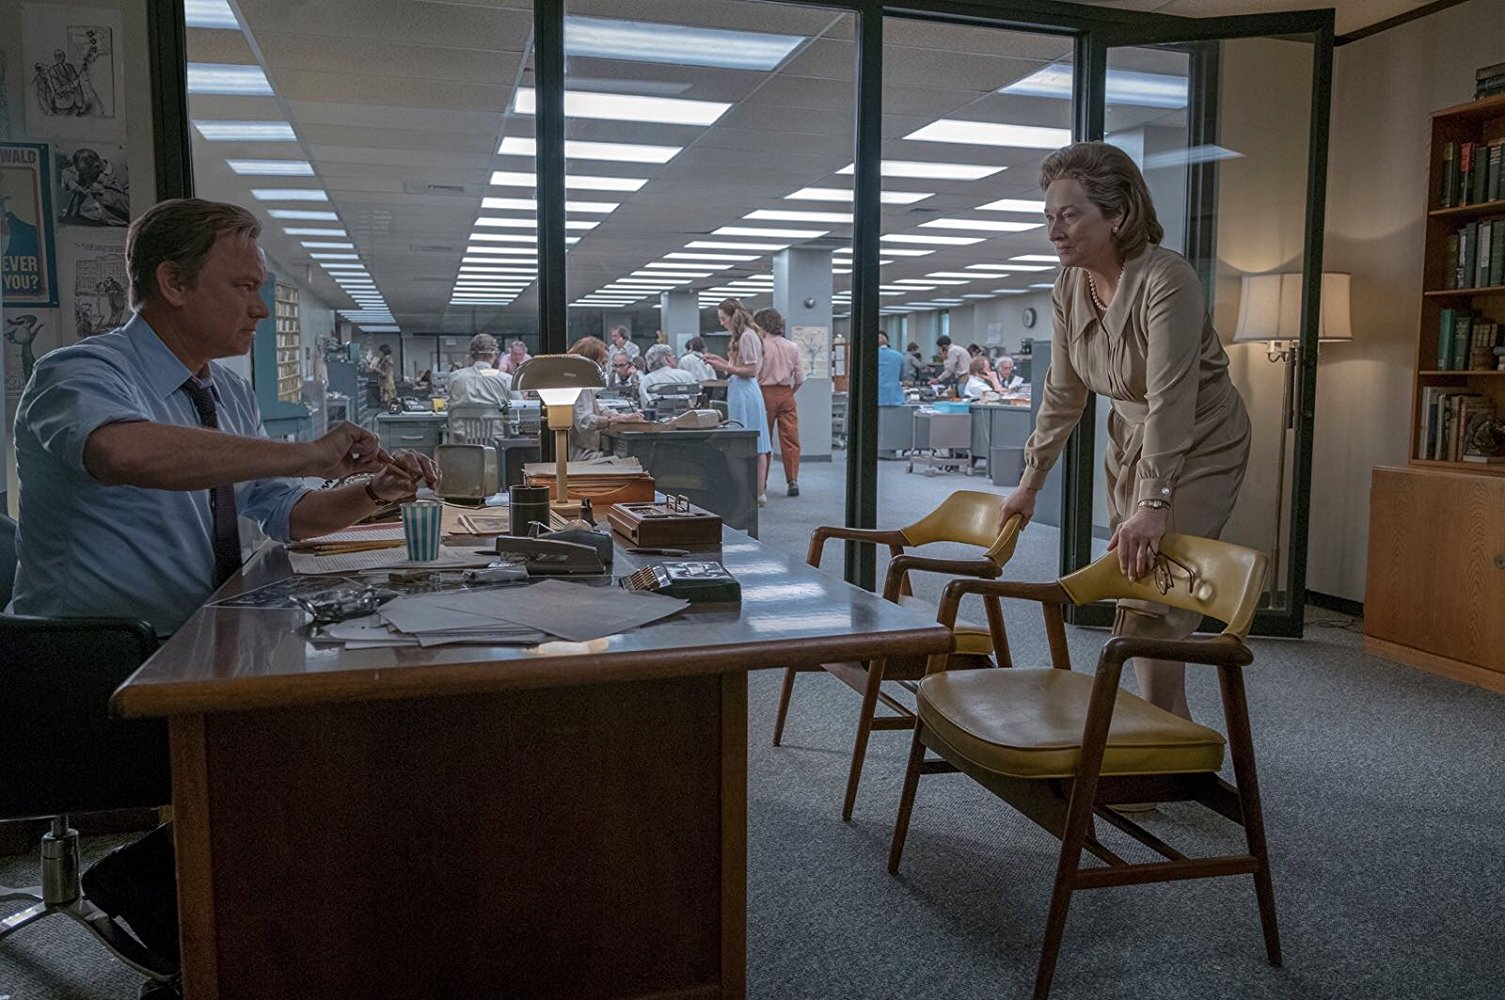 Tom Hanks and Meryl Streep in office in Steven Spielberg's The Post